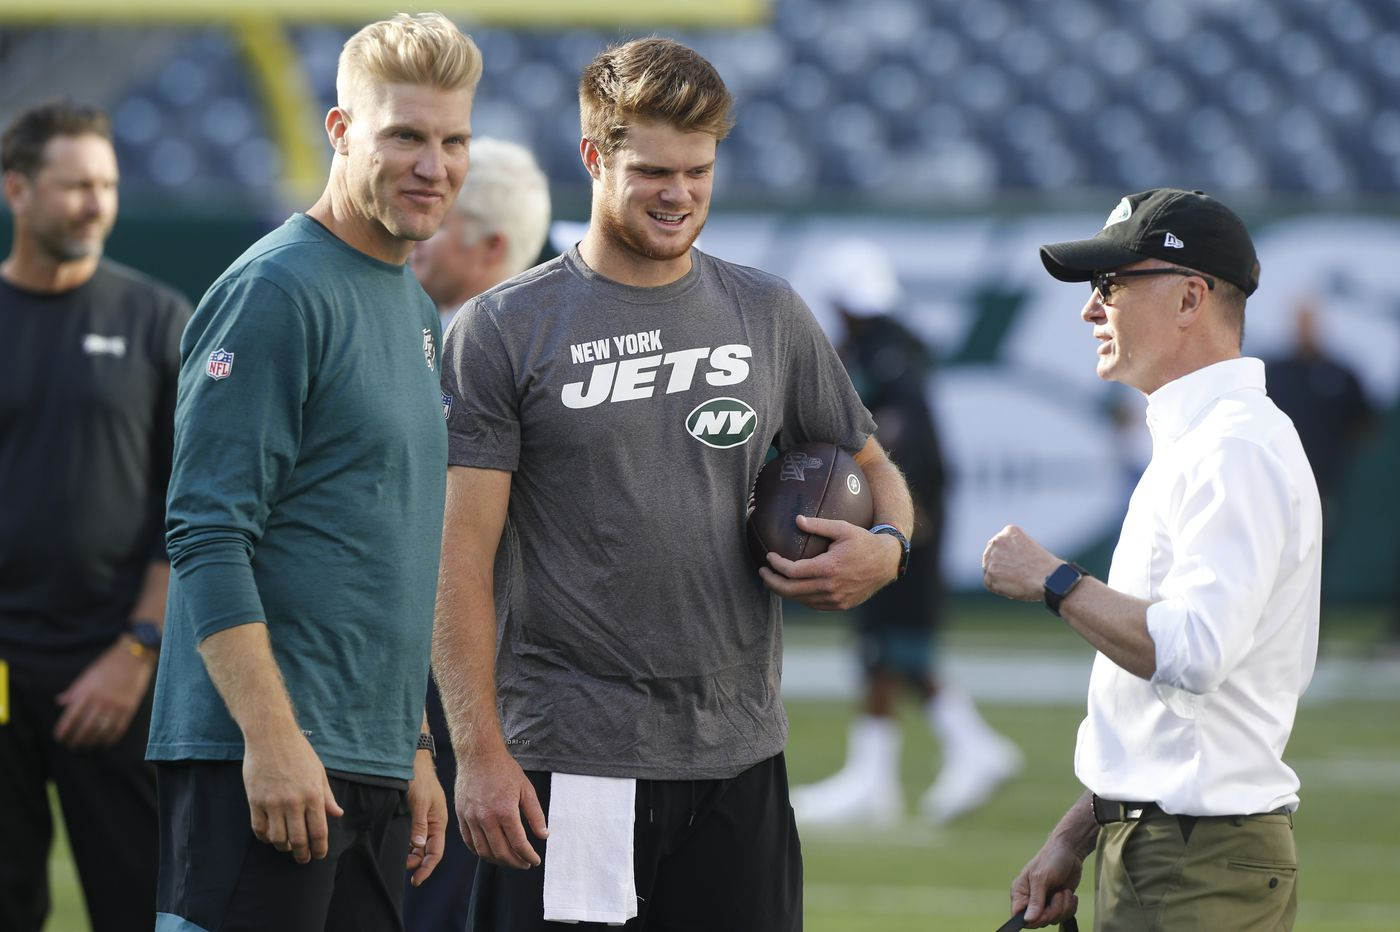 Jets owner Woody Johnson investigated for racist remarks and promoting Donald Trump's business, NFL fans must wear masks, and other sports news